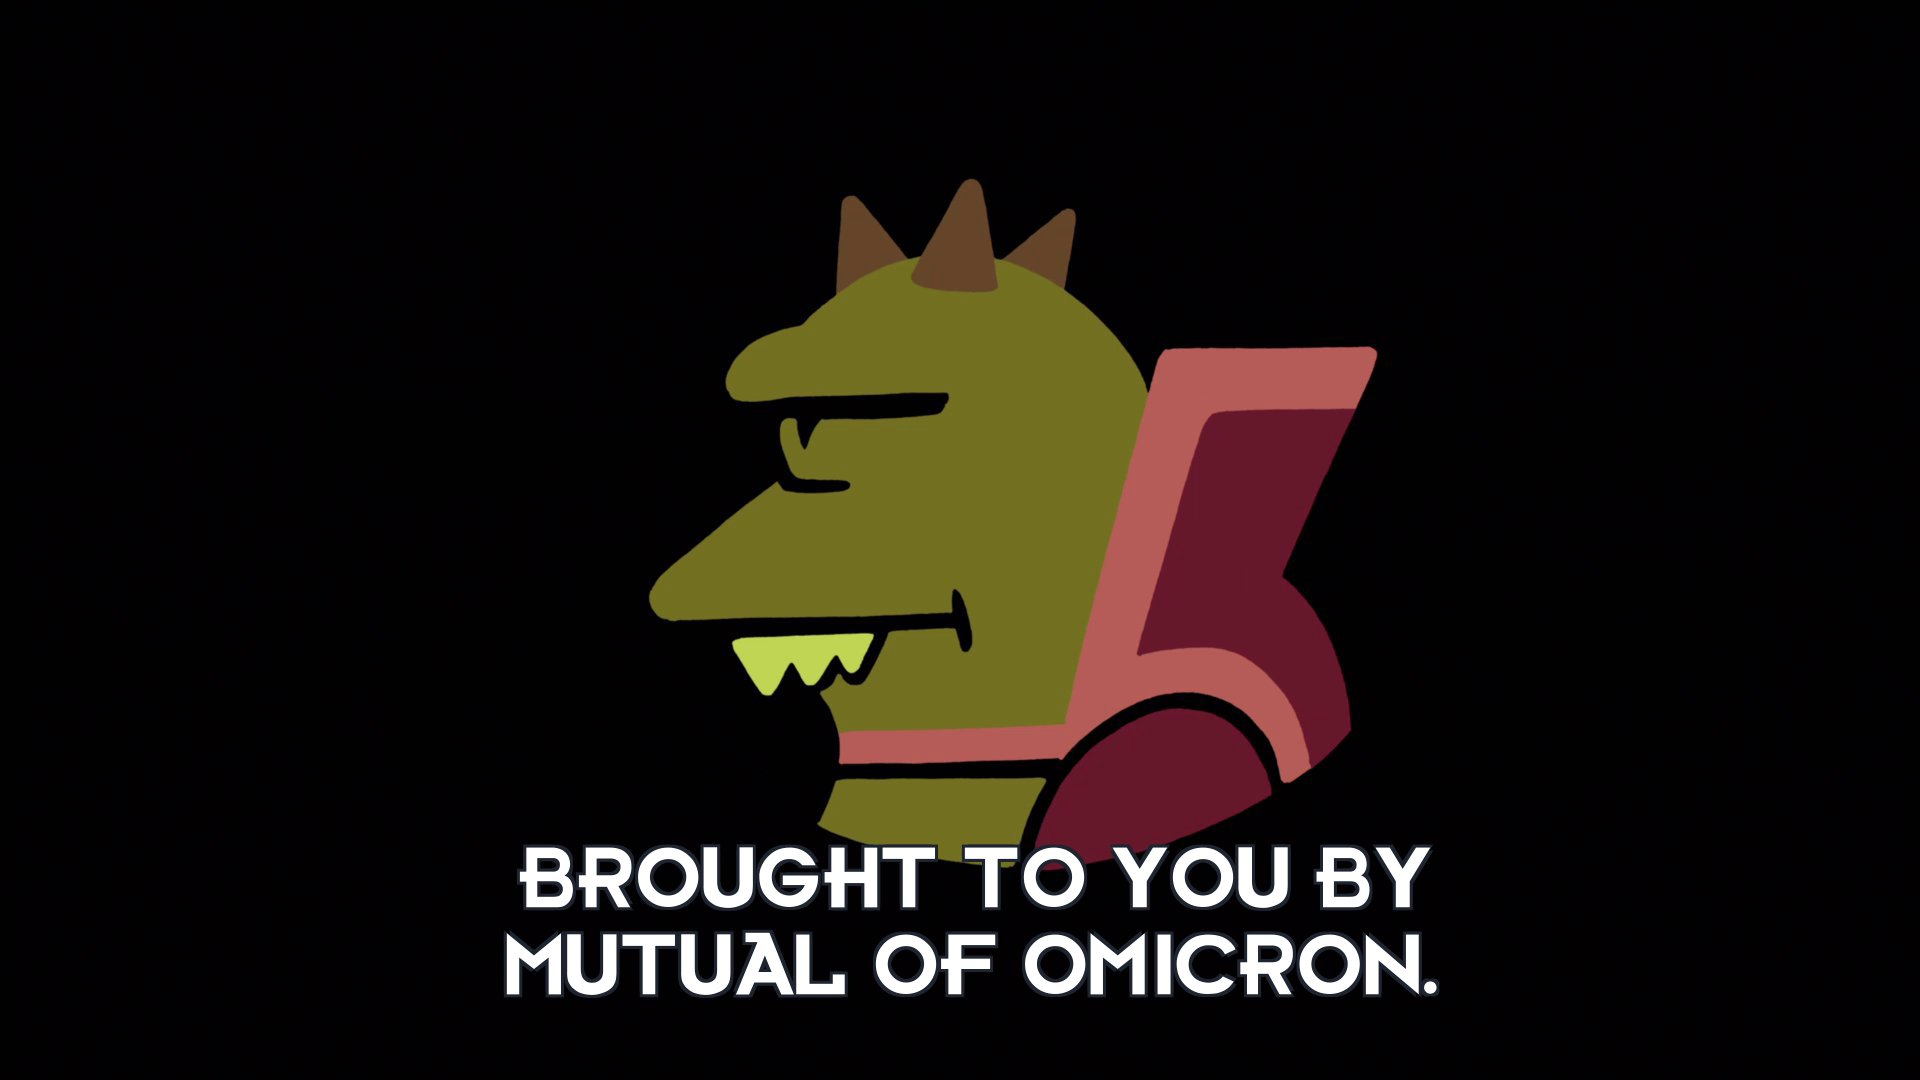 Announcer: Brought to you by Mutual of Omicron.